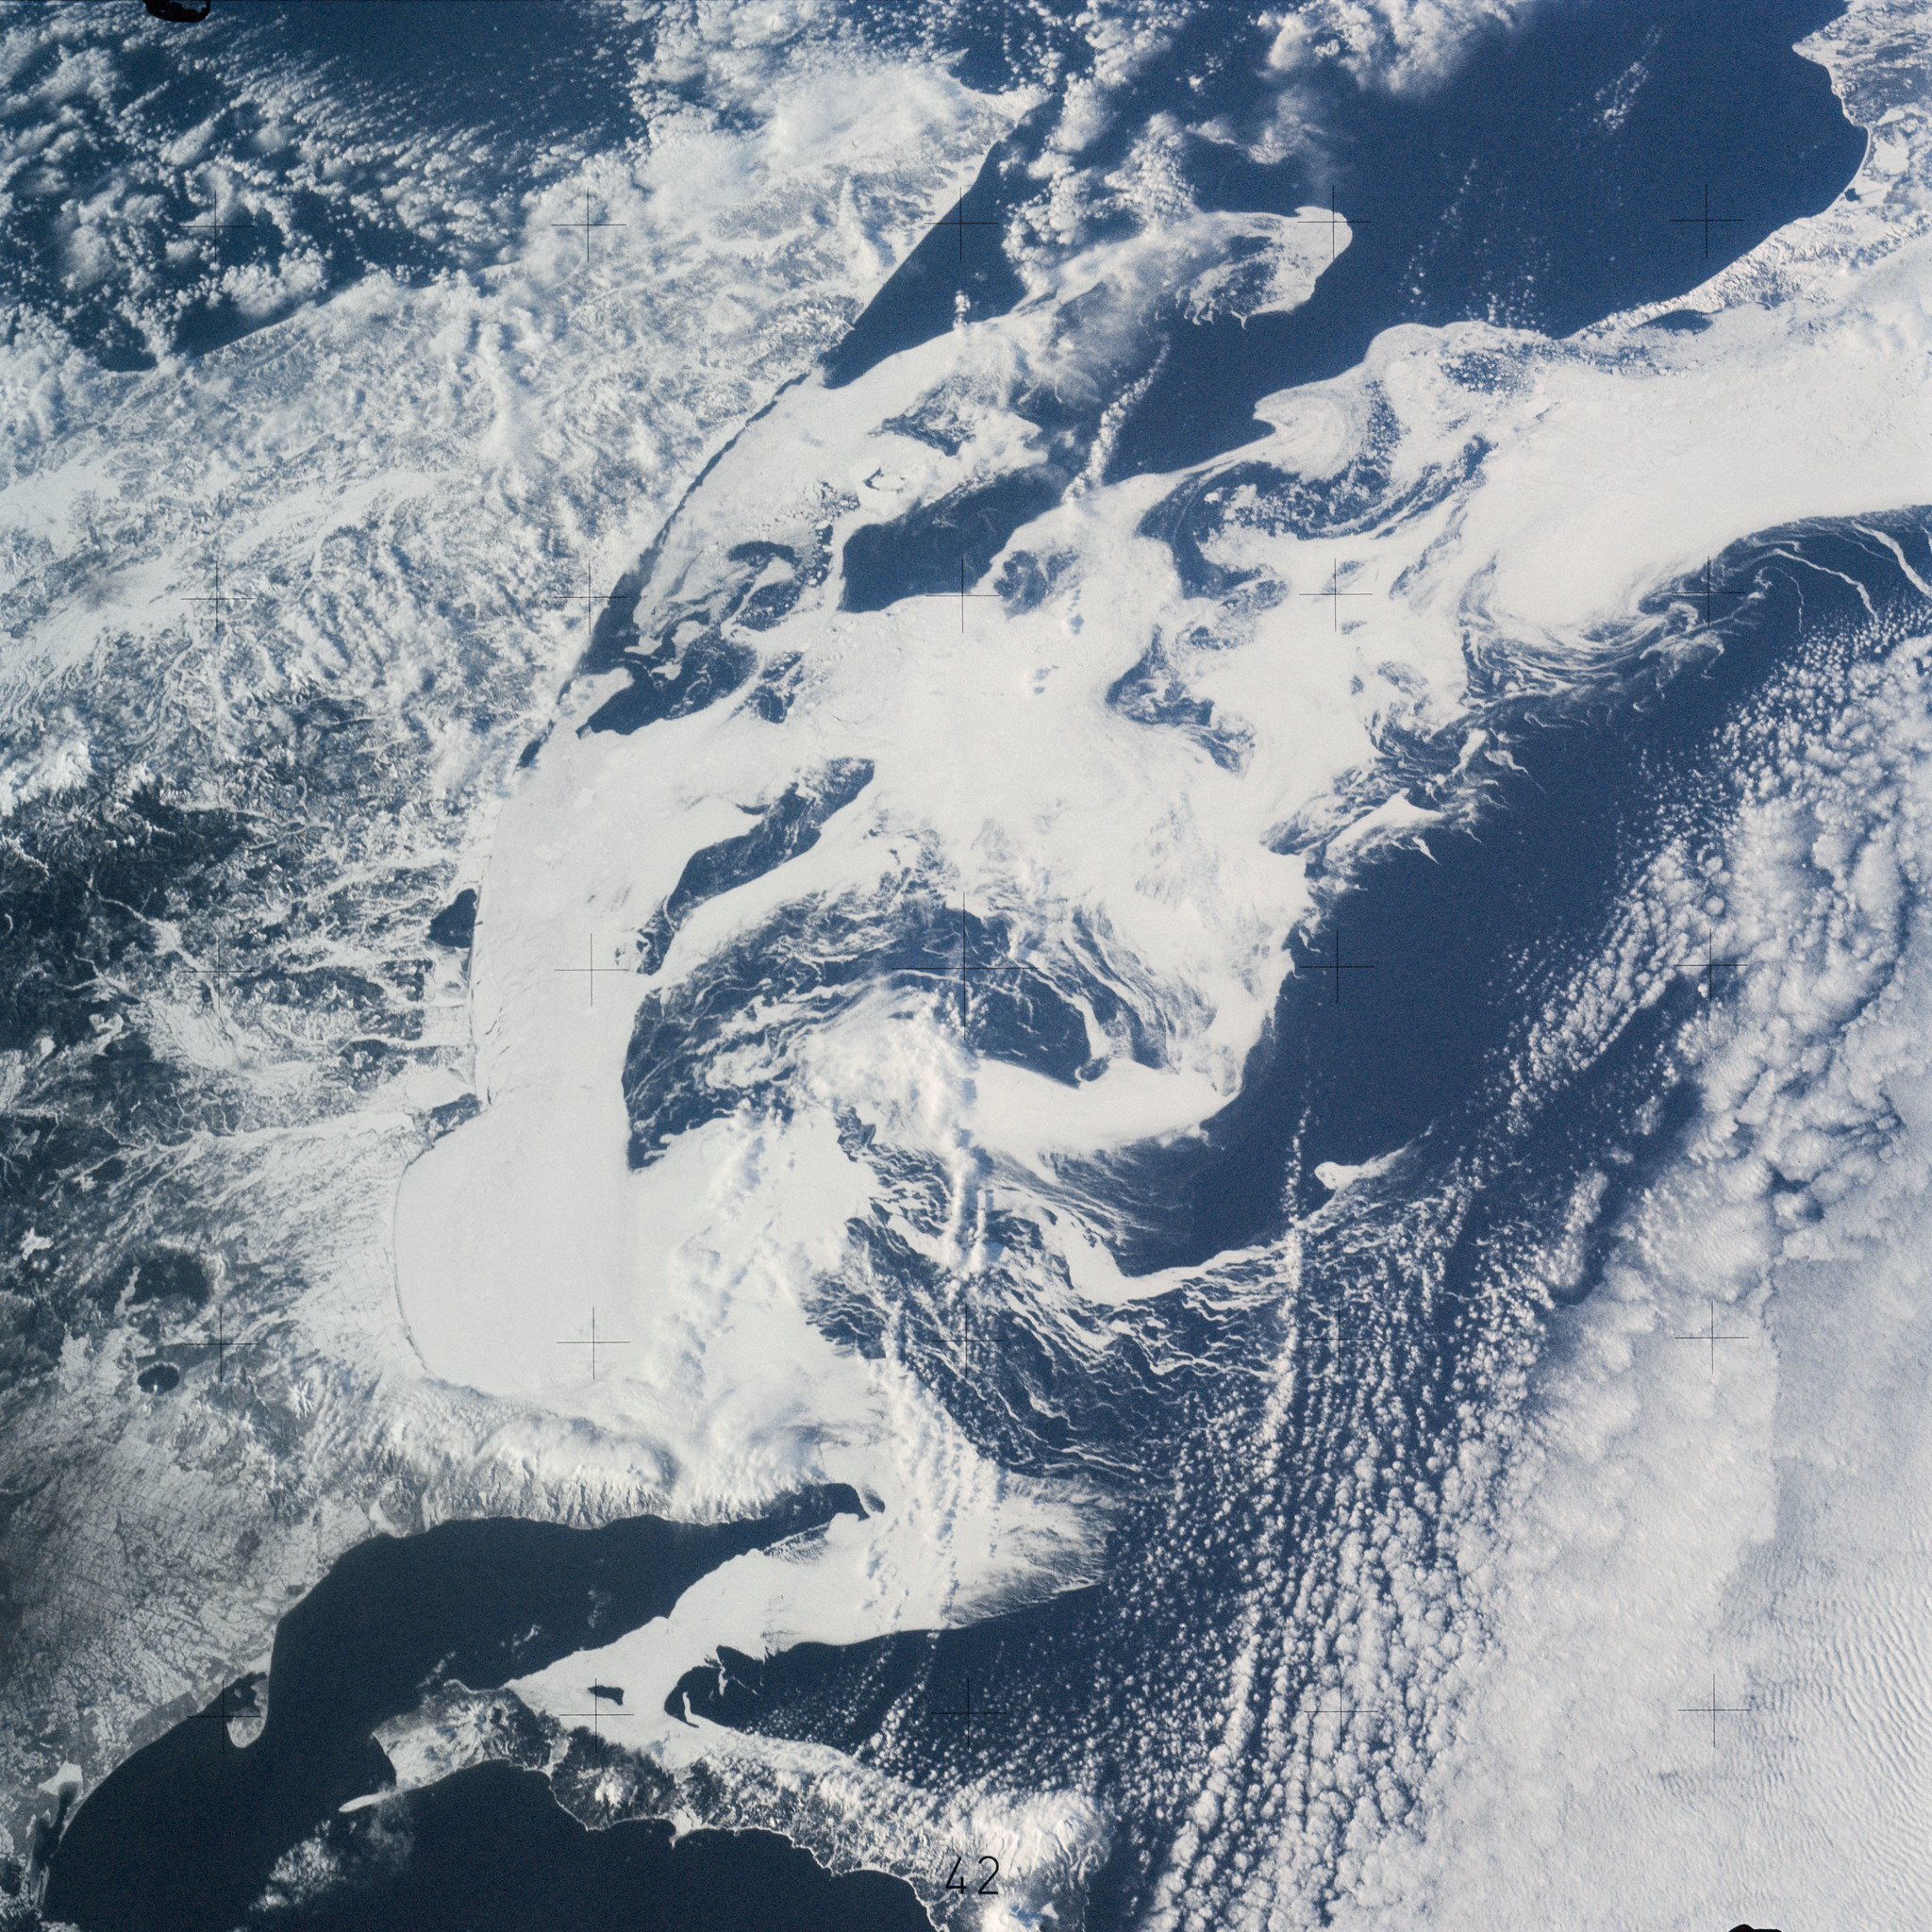 Skylab 4 Earth View of the southern part of the Sea of Okhotsk, north of Japan